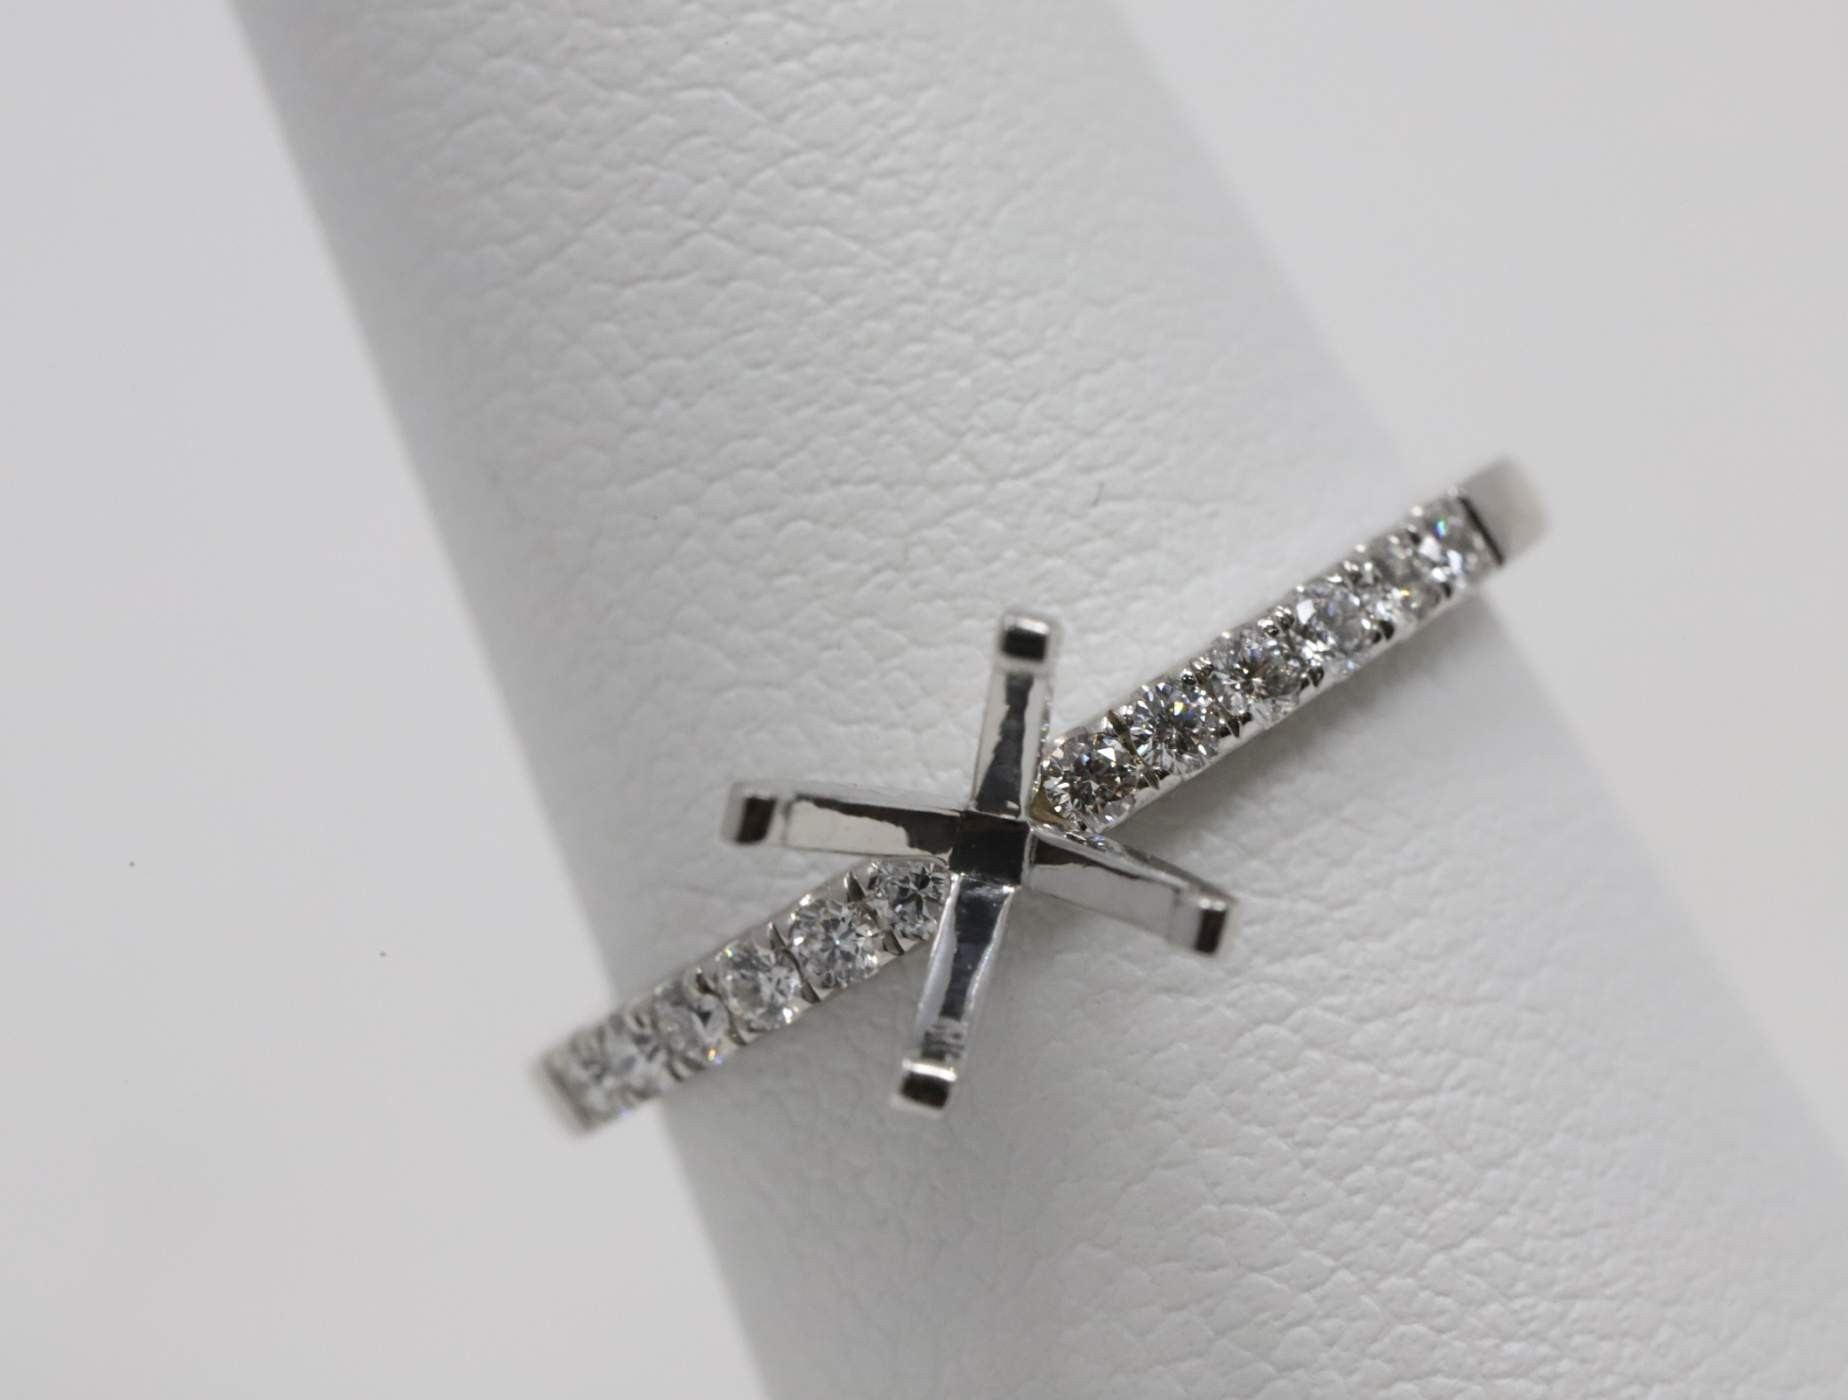 Ladies 14k White Gold (no Major Stone Currently) Engagement Ring Mounting